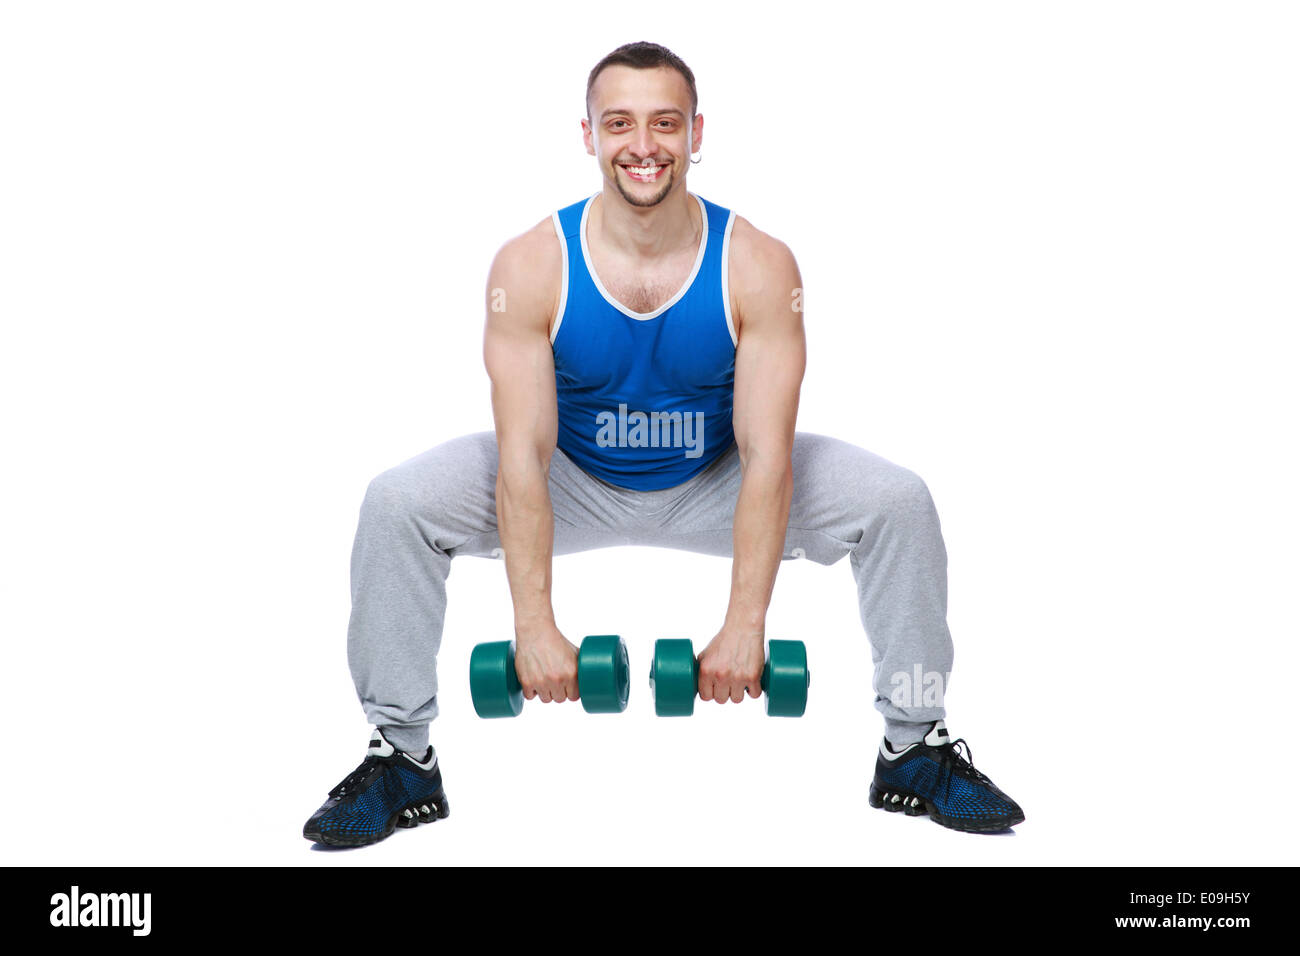 Sport man working out with dumbbells over white bakground - Stock Image